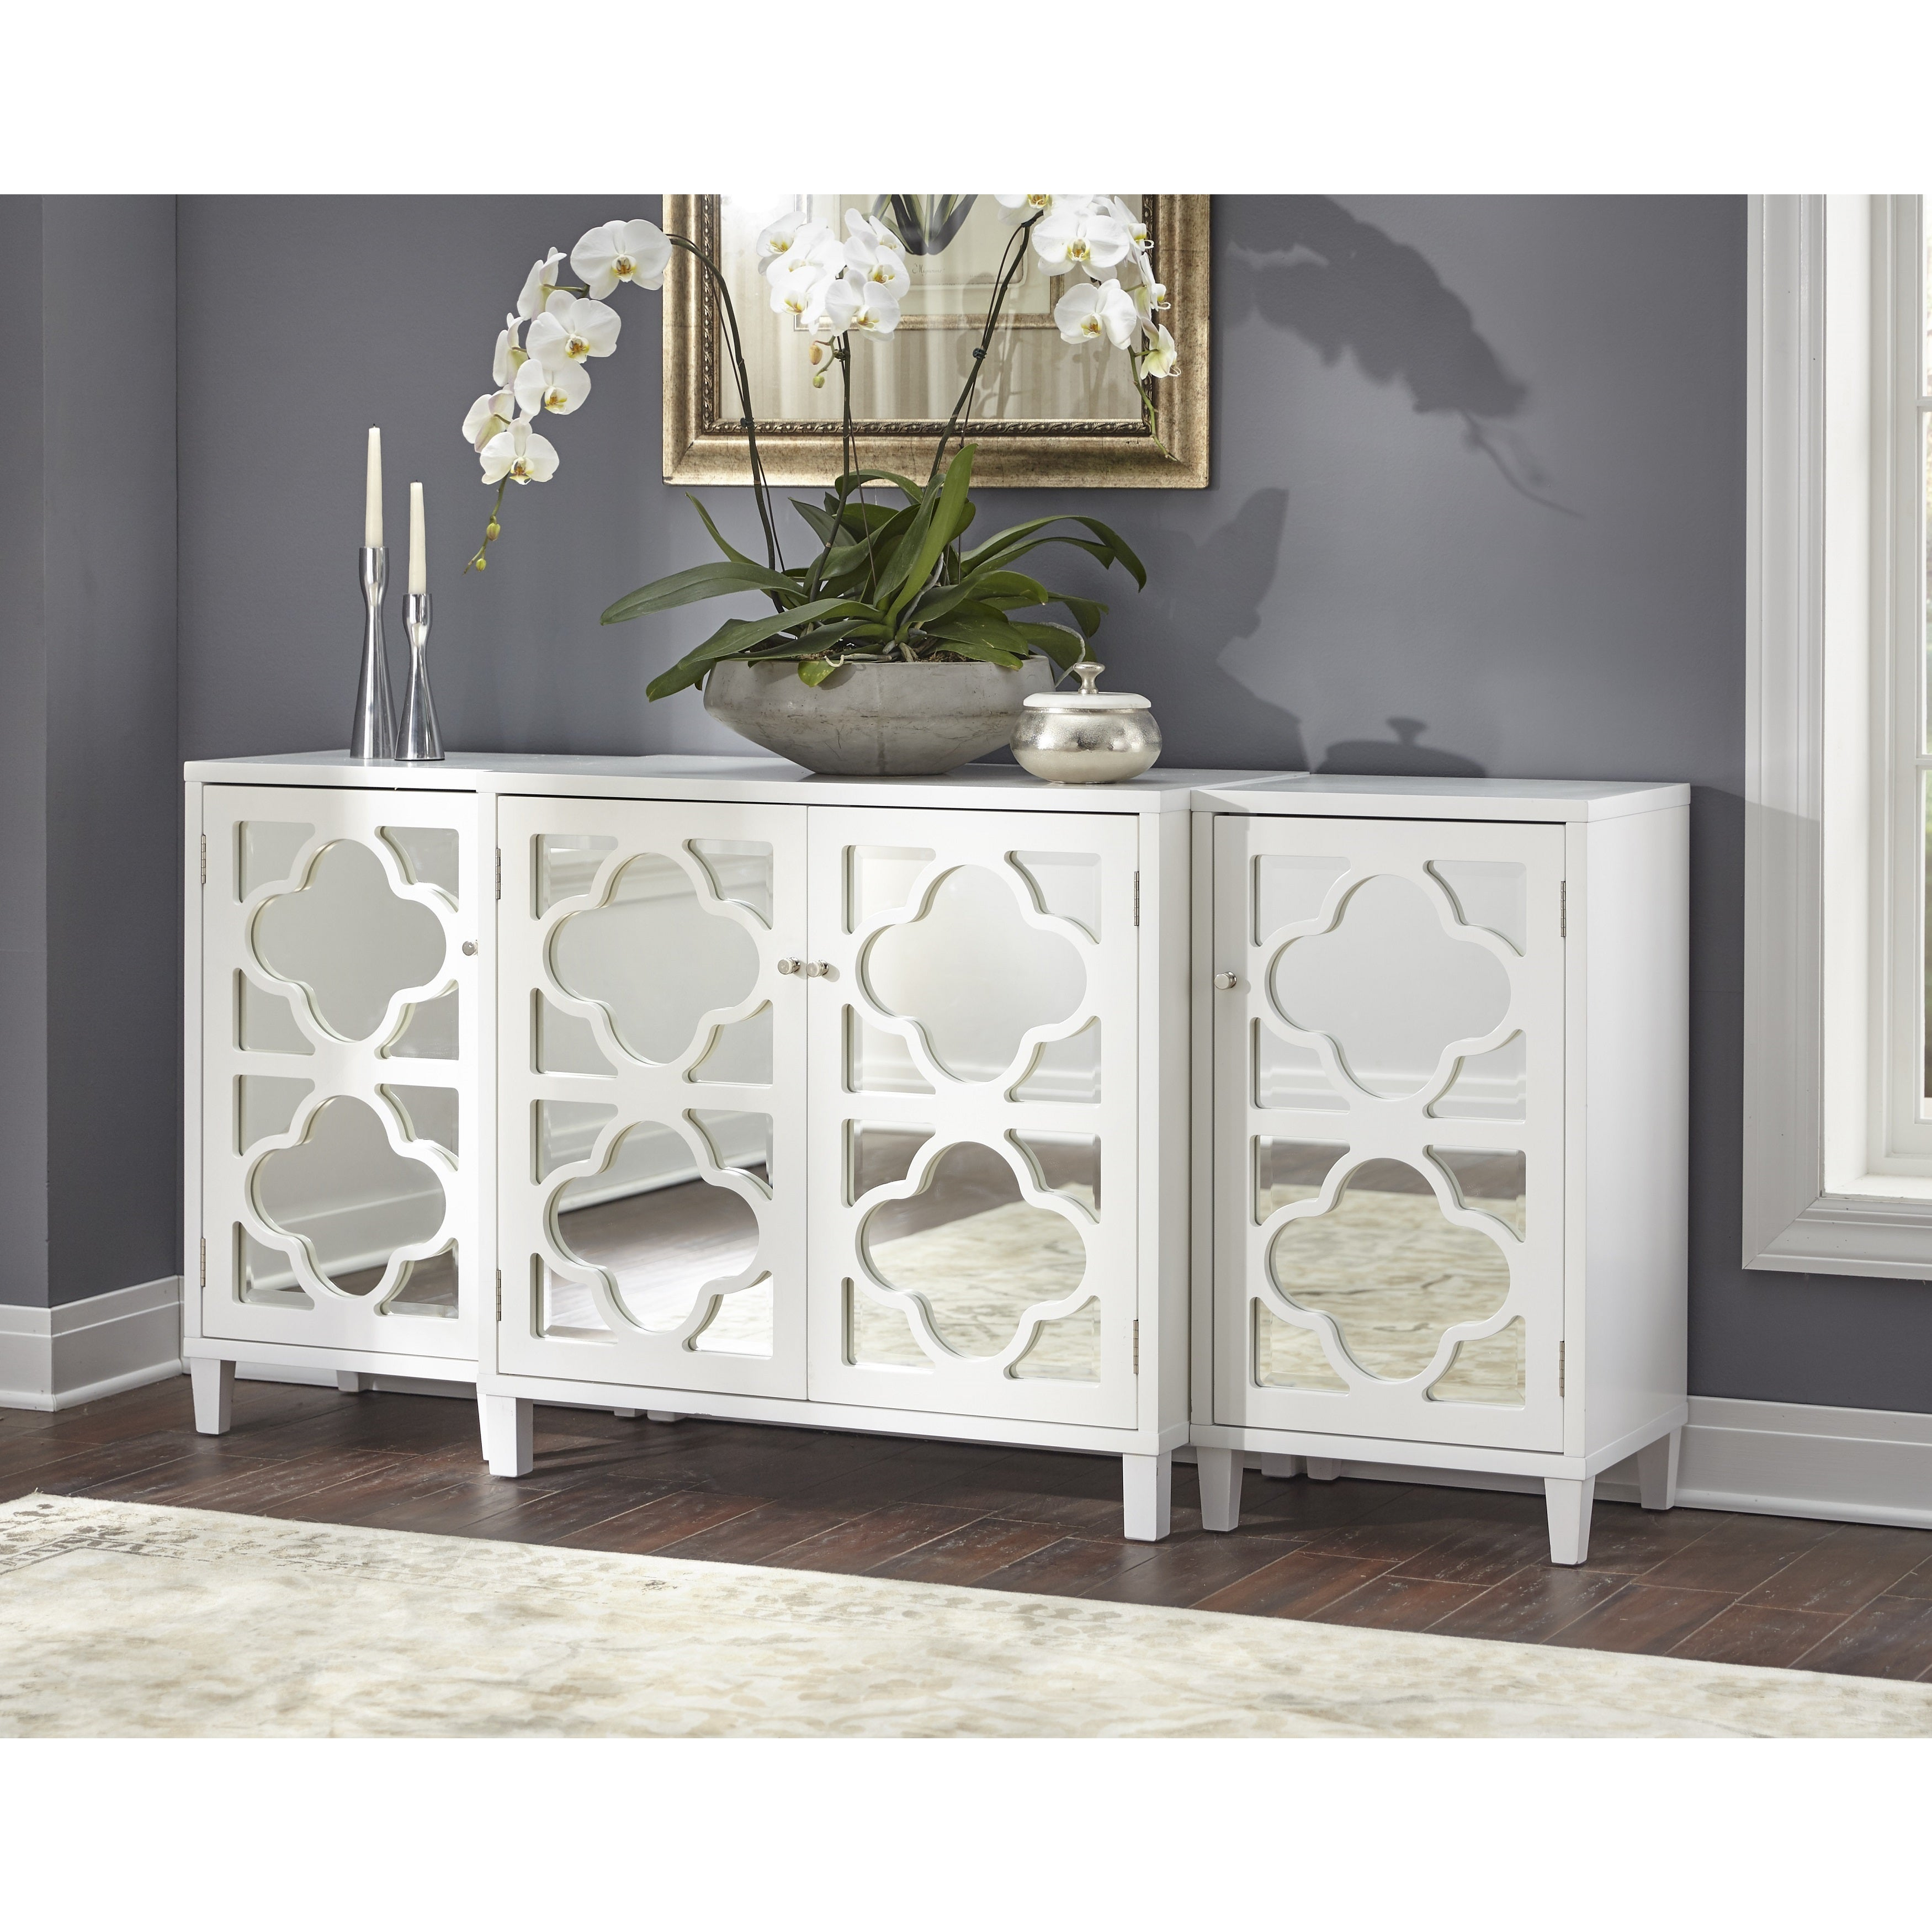 Details About Buffet Storage Cabinet Sideboard Entryway Tv Stand 3 Pcs Set  Mirrored Furniture Intended For Mirrored Double Door Buffets (Photo 7 of 30)